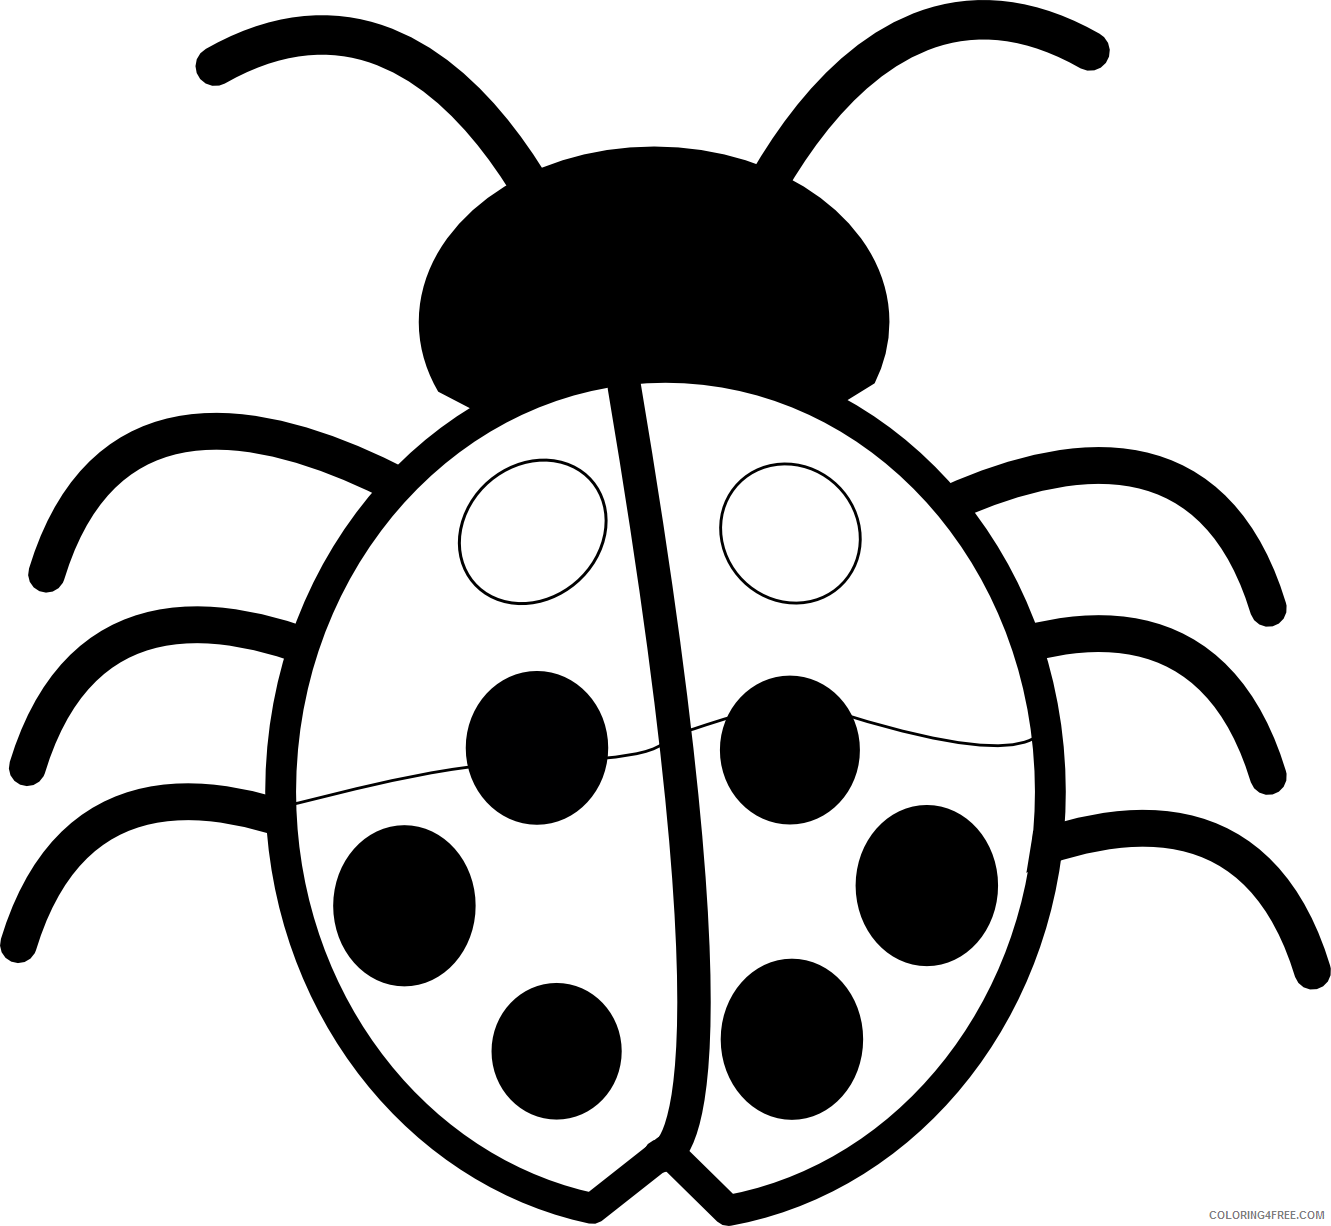 Ladybug Outline Coloring Pages ladybug outline Printable Coloring4free